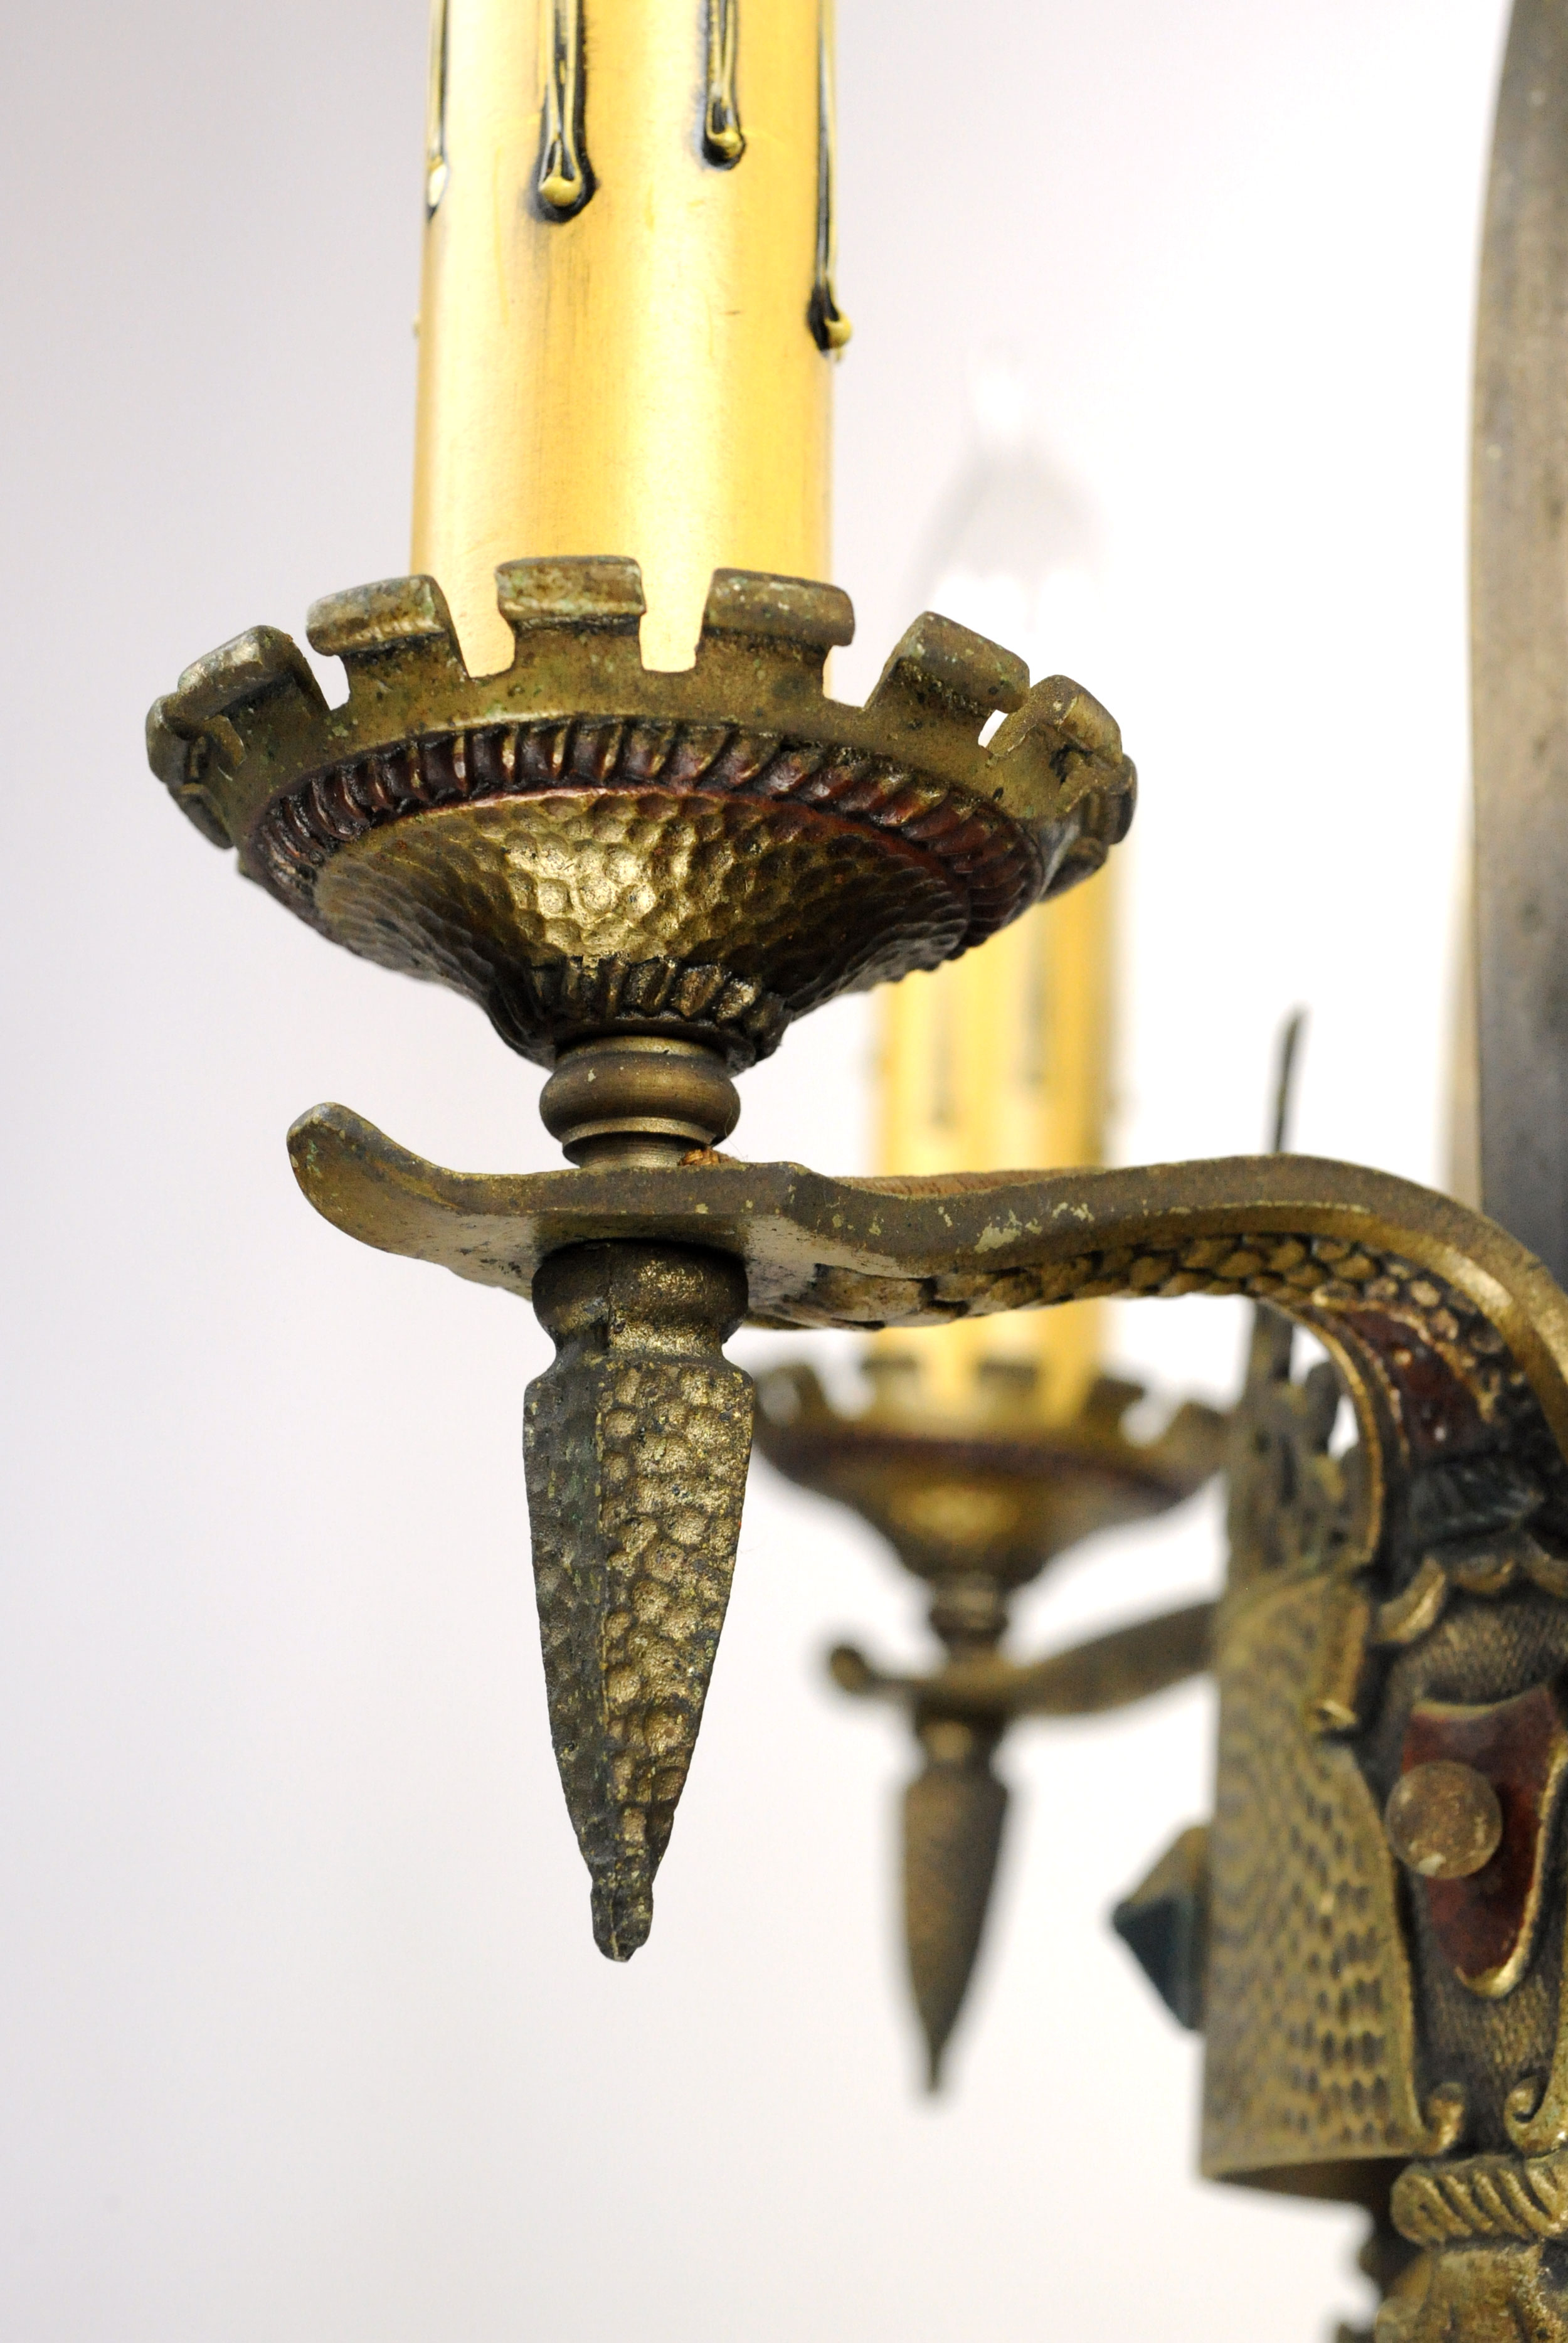 46984-five-ring-candle-chandelier-candle-holder.jpg